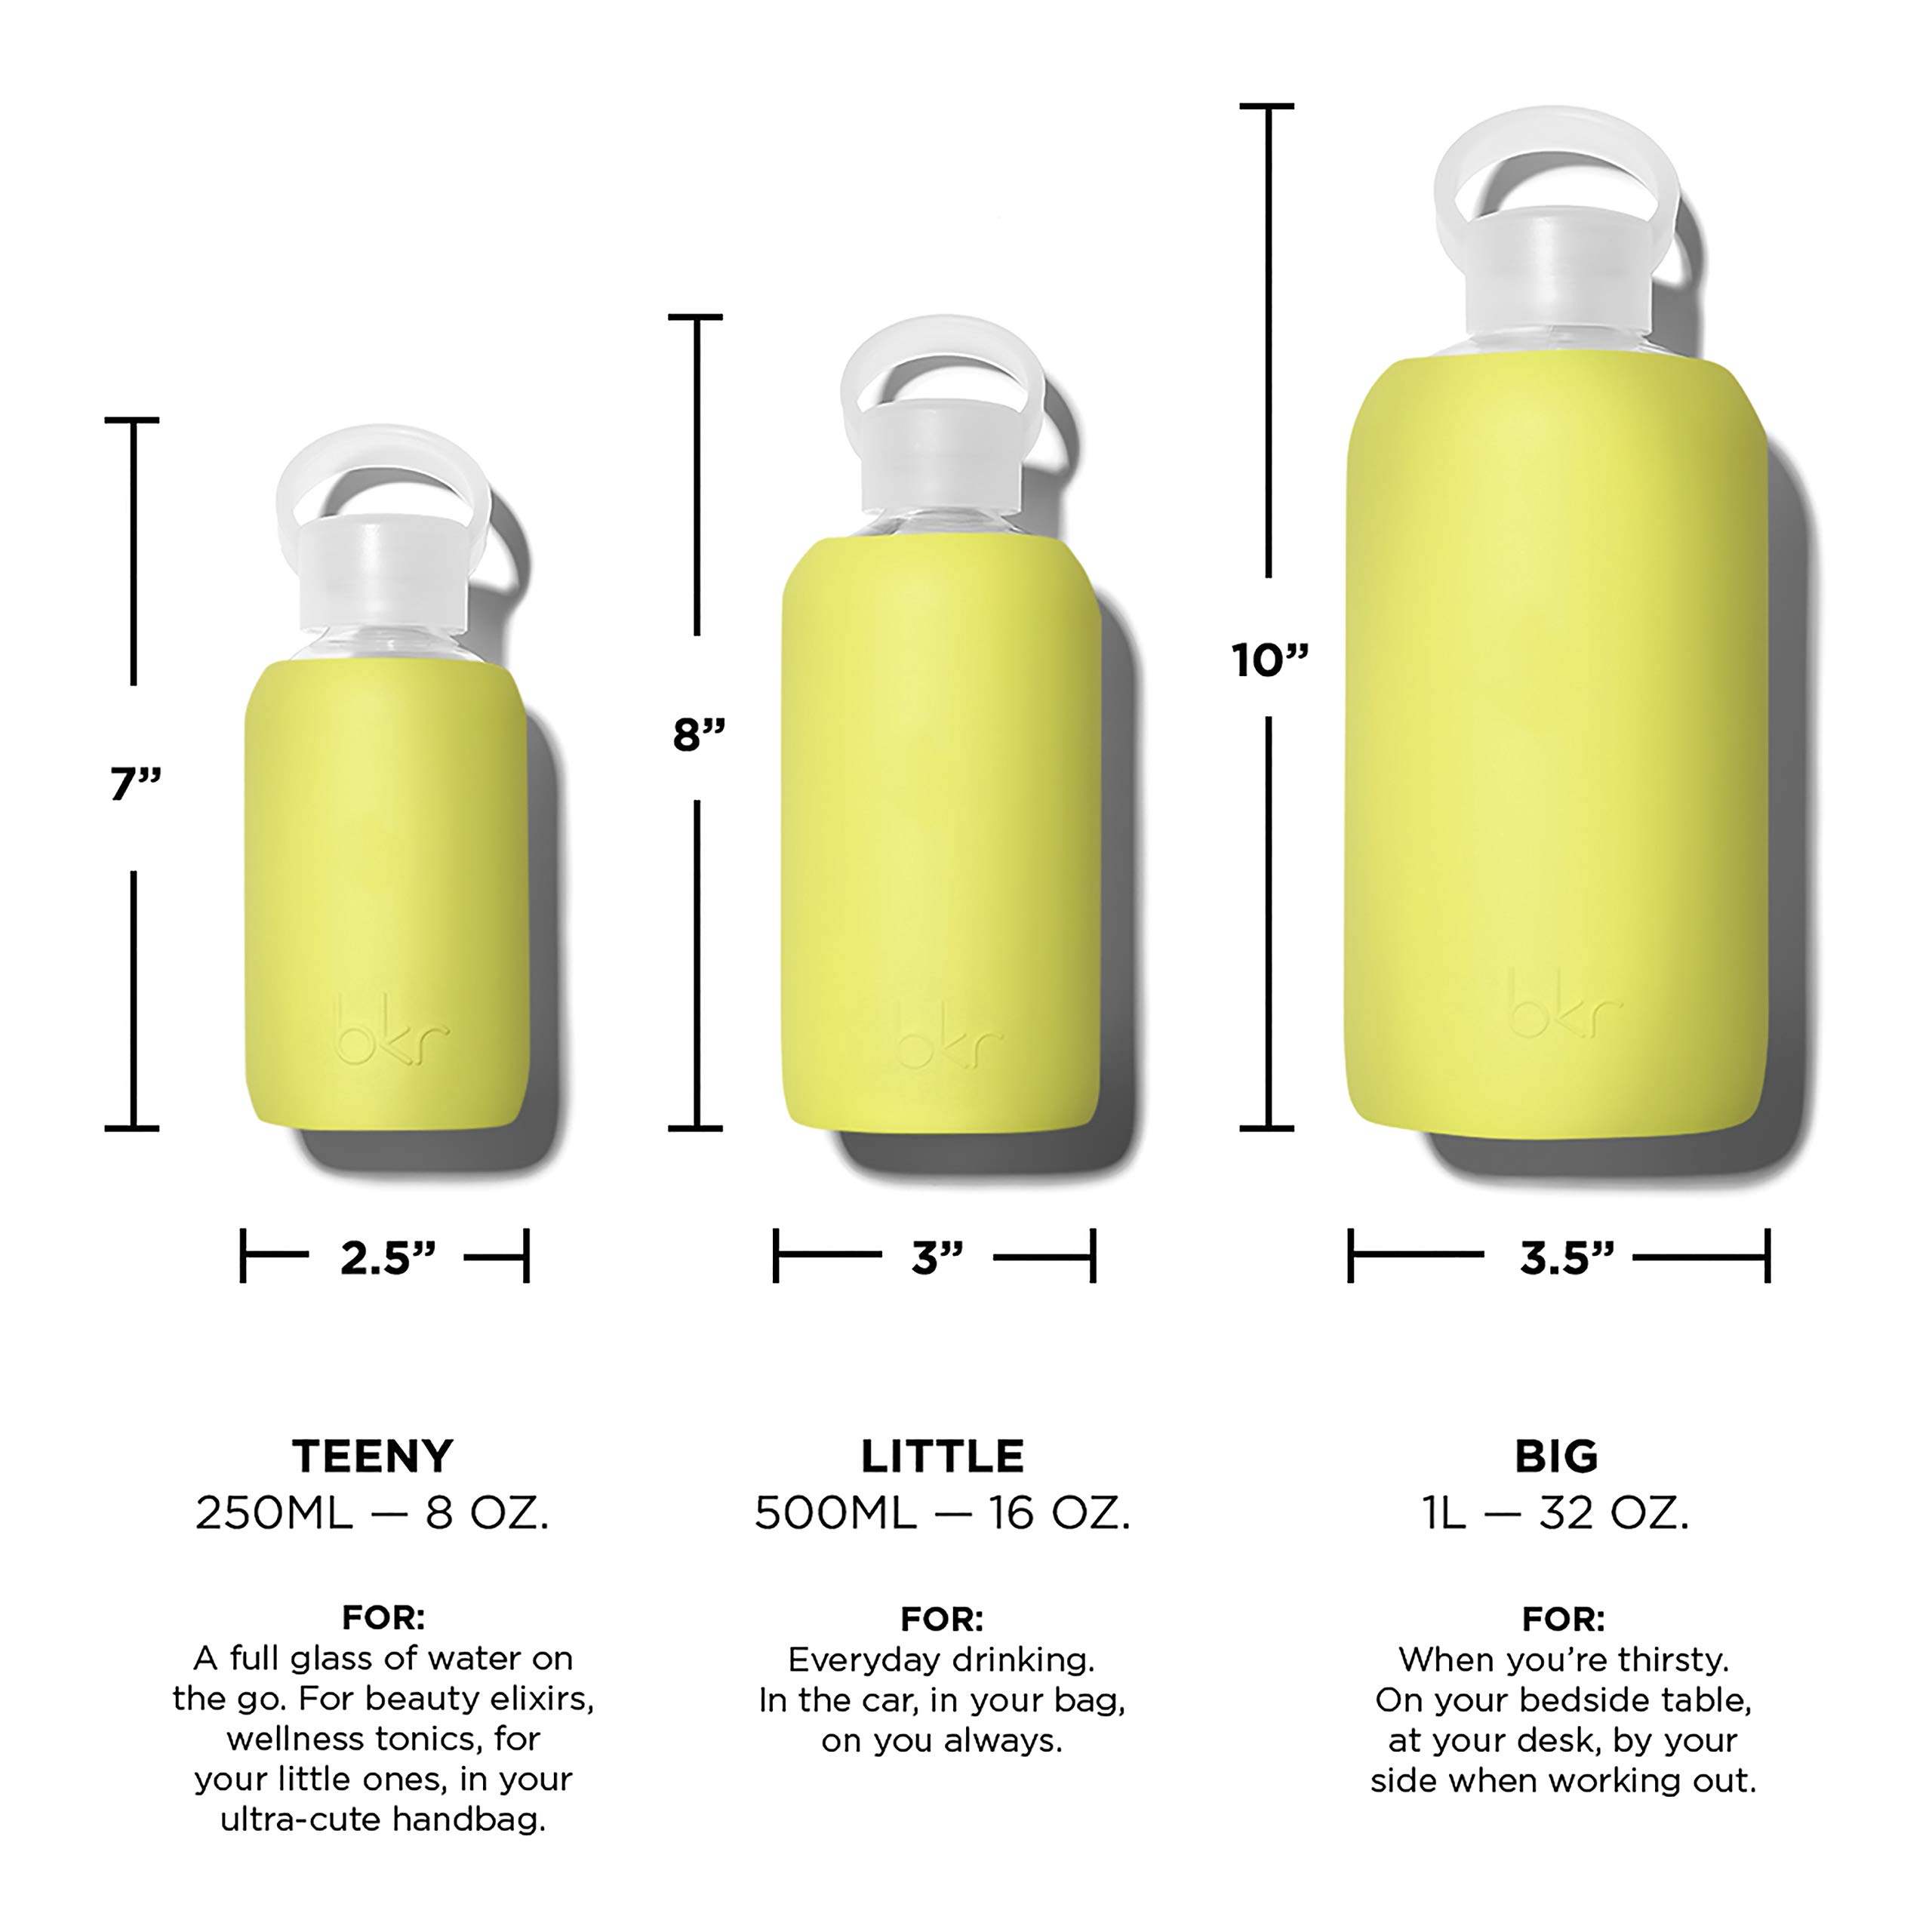 bkr Gigi Glass Water Bottle with Smooth Silicone Sleeve for Travel, Narrow Mouth, BPA-Free & Dishwasher Safe, Opaque Lime Yellow, 1 Count